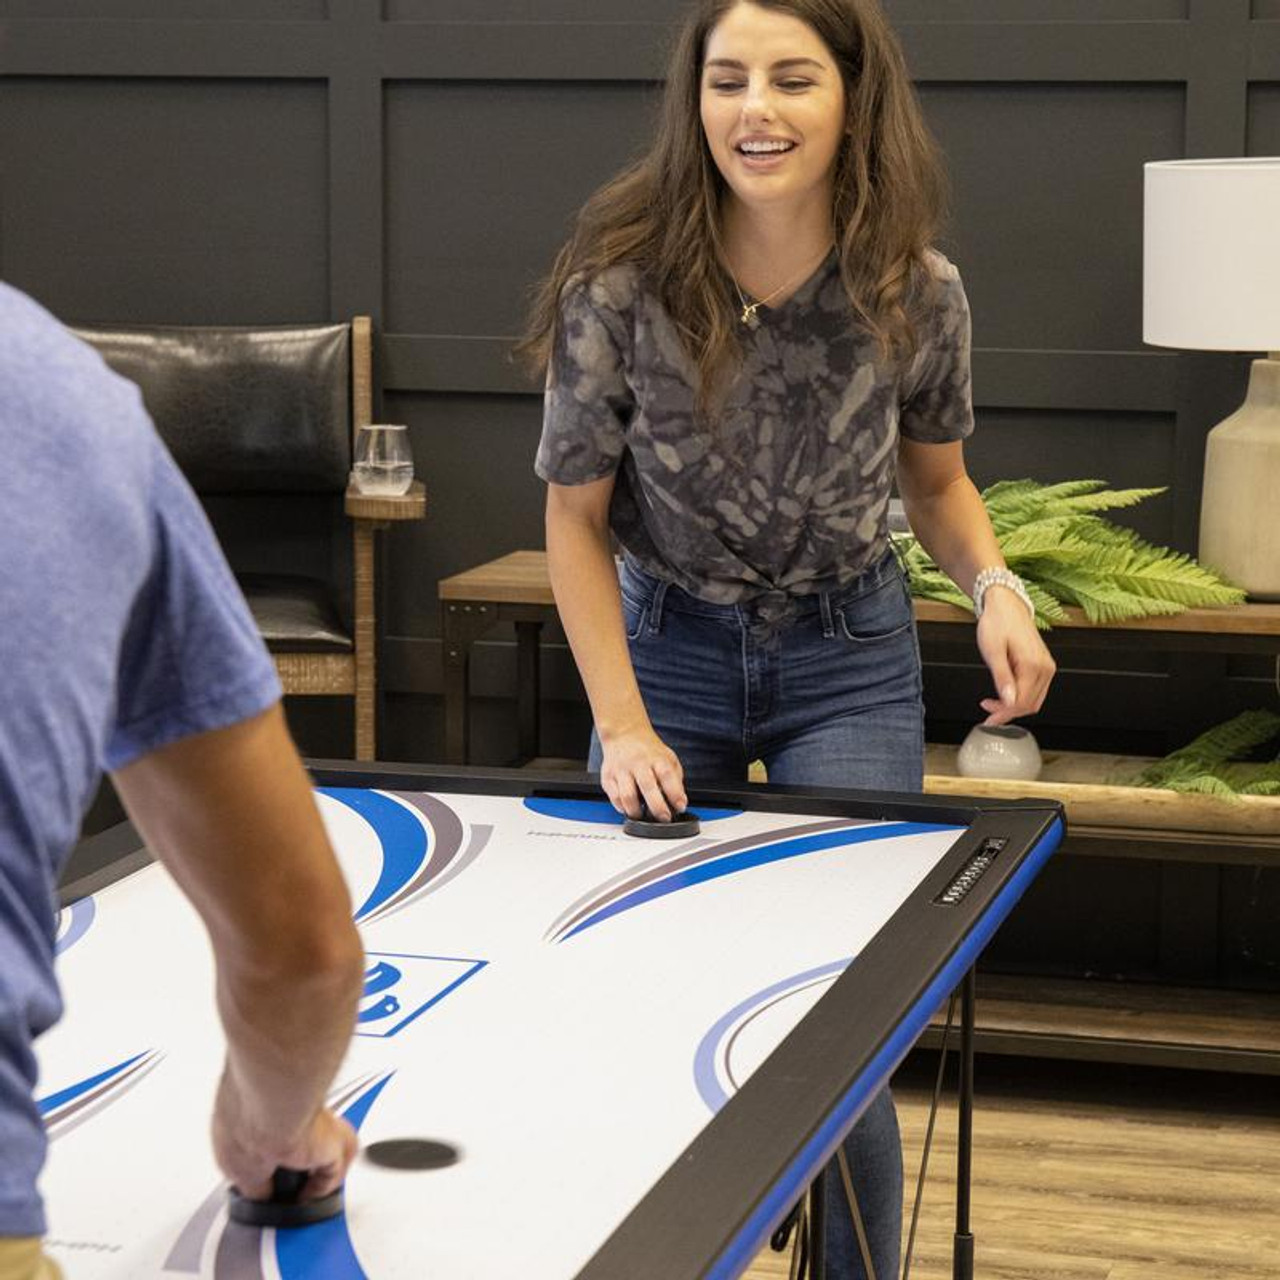 """45-5053W, Triumph, escalade, 6', 72"""", Portable, Pop Up, Air, Hockey, Powered, Table, FREE SHIPPING"""